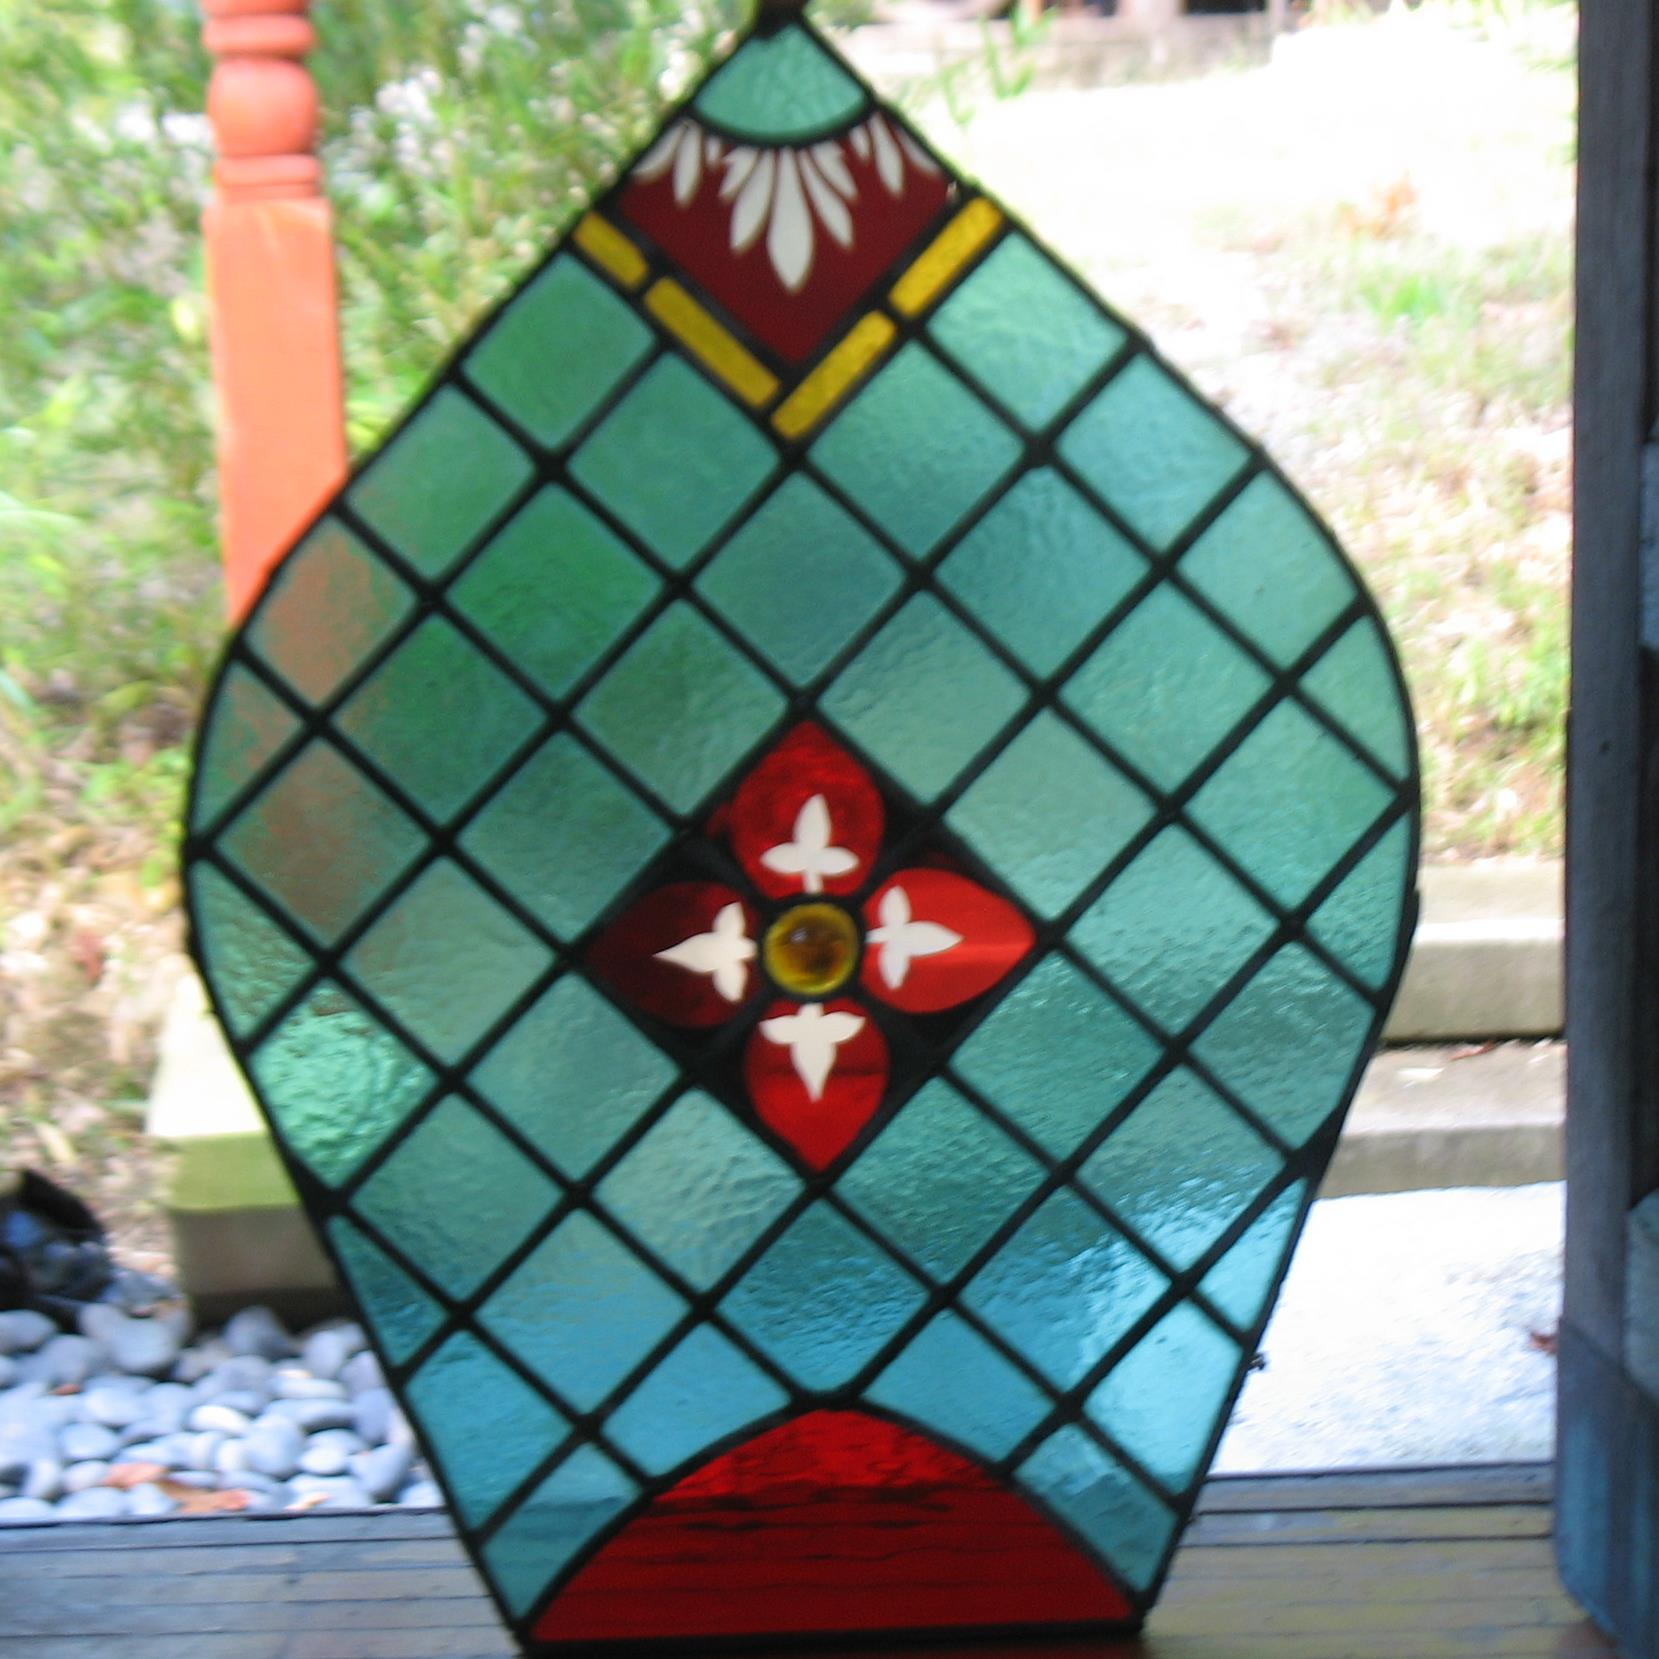 Adorable small piece of glass in vibrant red and green stained glass